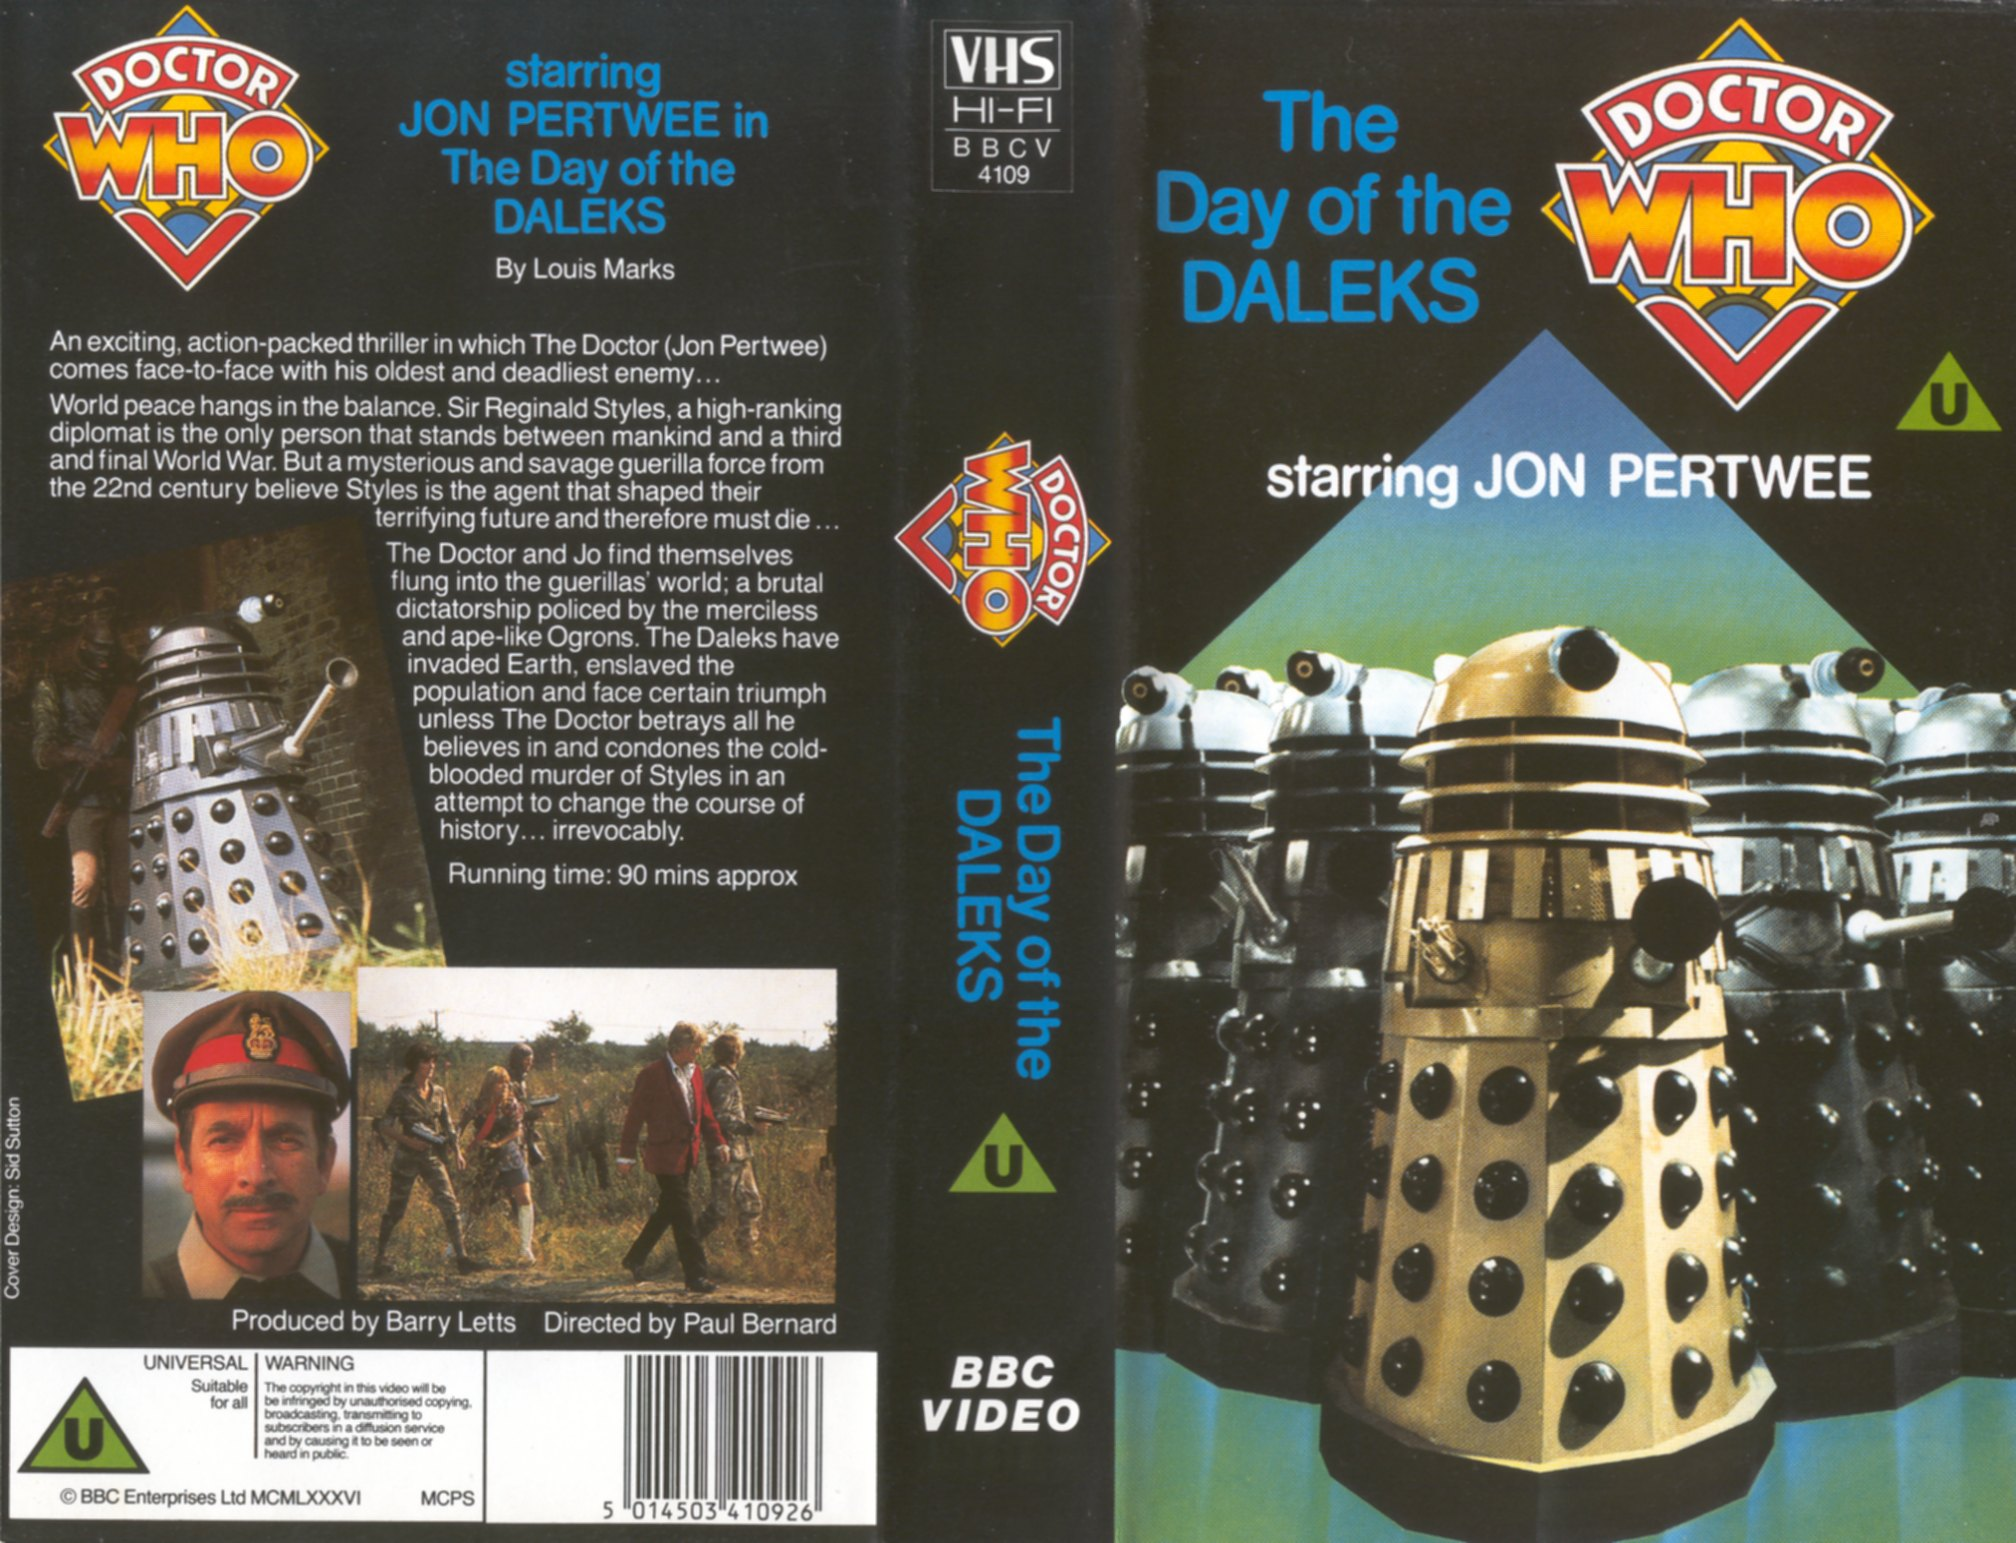 The Day of the Daleks VHS